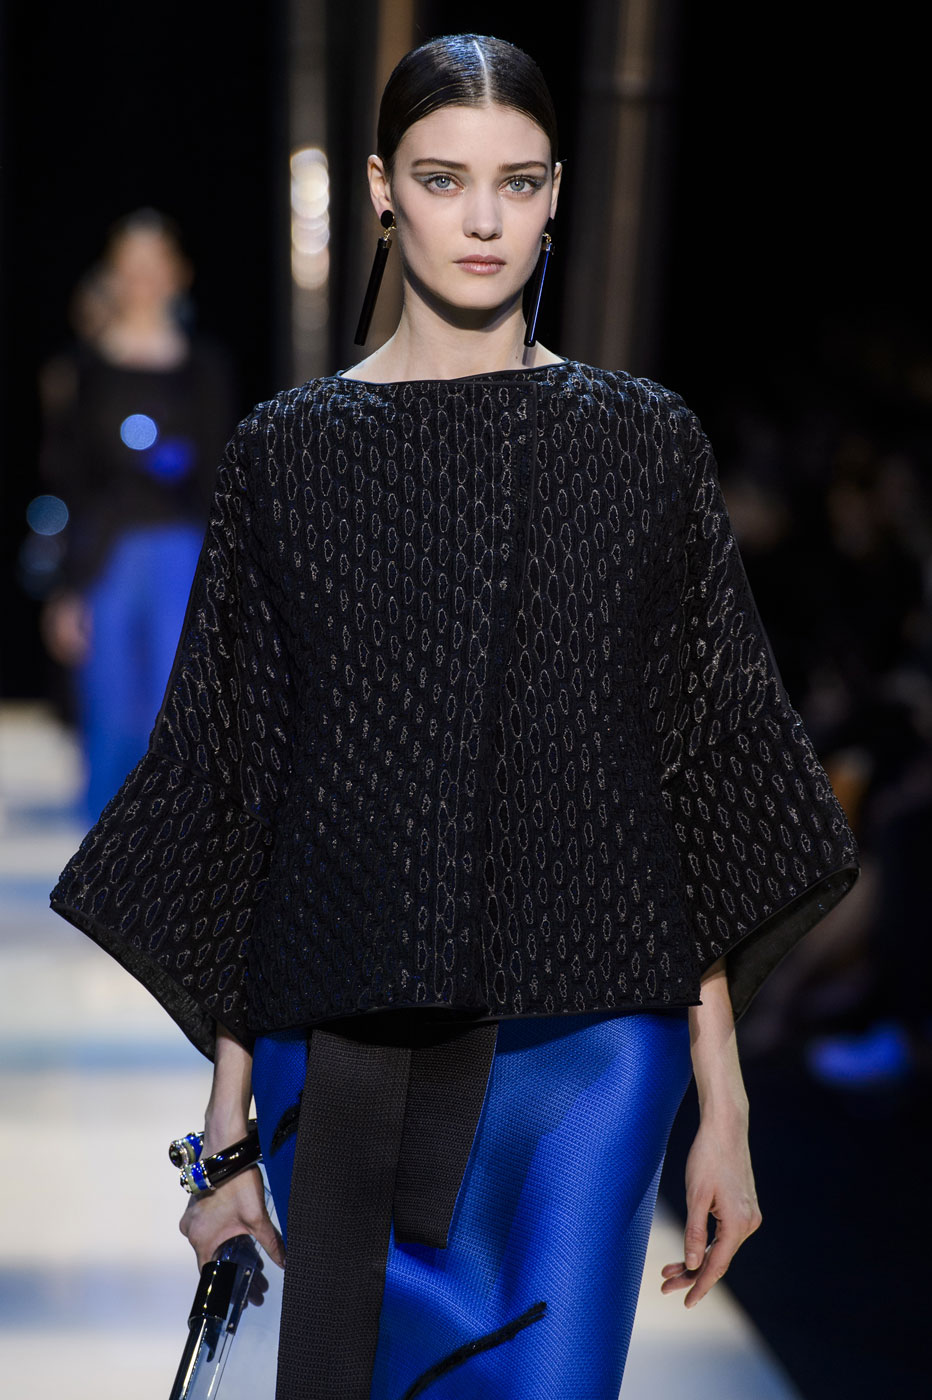 Giorgio-armani-Prive-fashion-runway-show-haute-couture-paris-spring-2015-the-impression-130